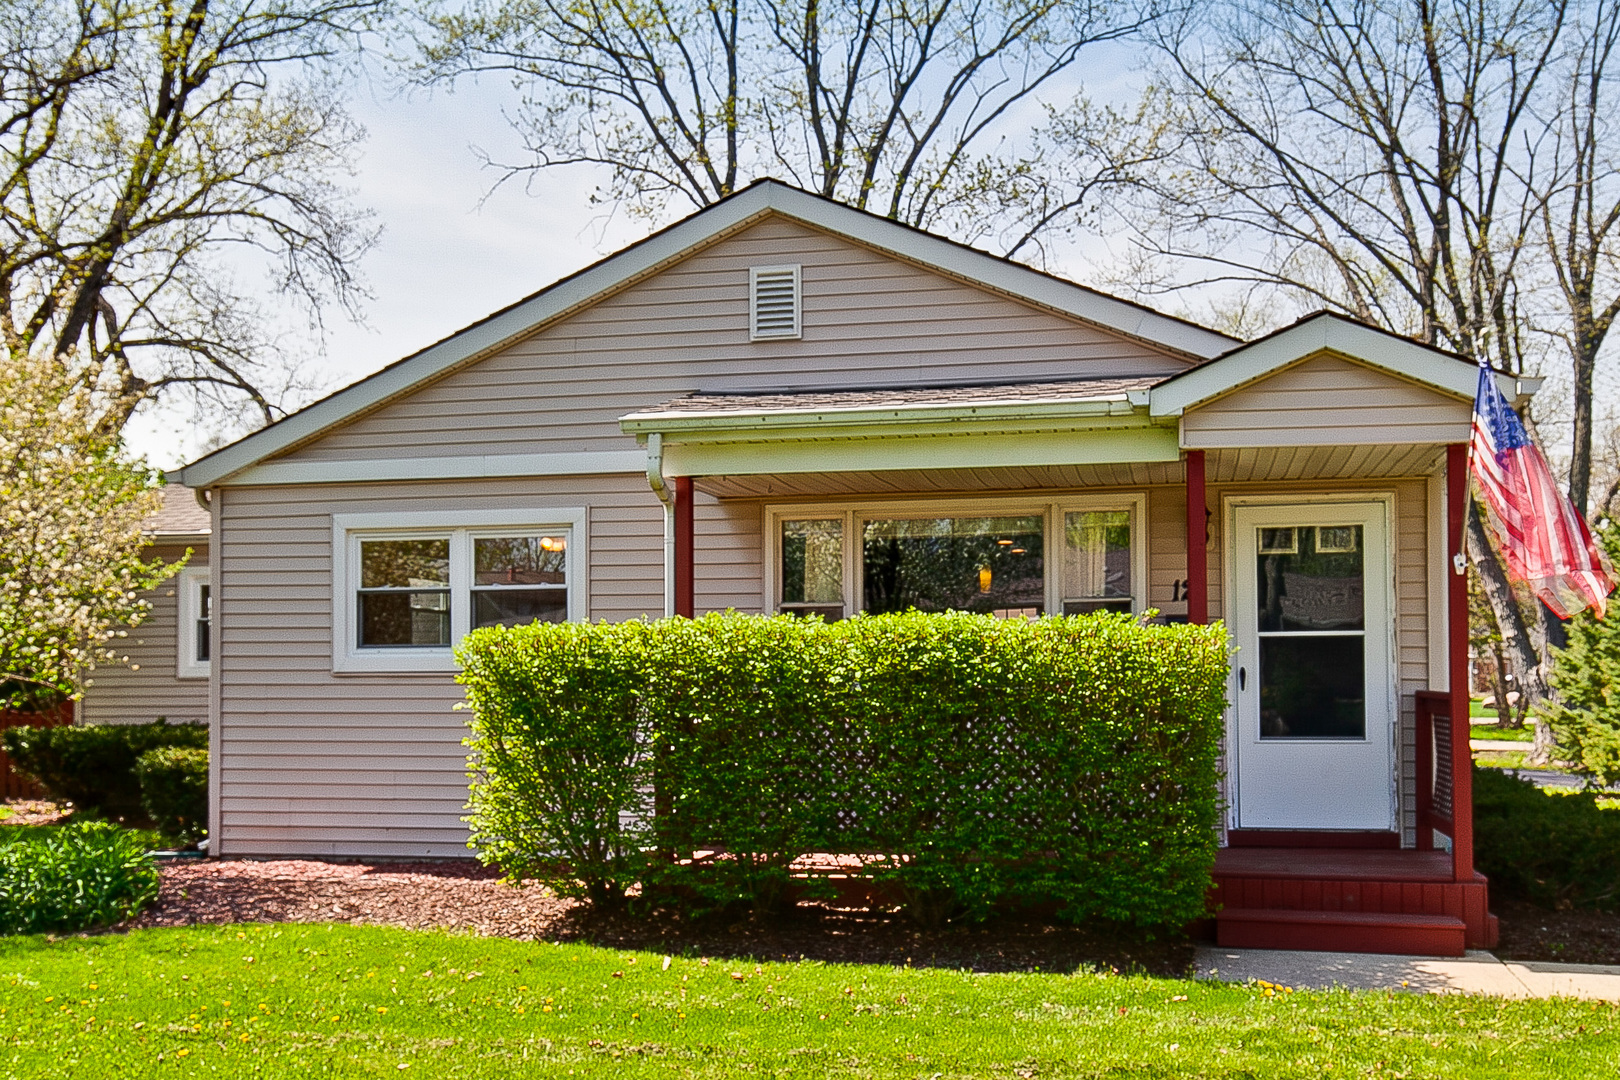 12 GOLFVIEW Road, Lake Zurich in Lake County, IL 60047 Home for Sale